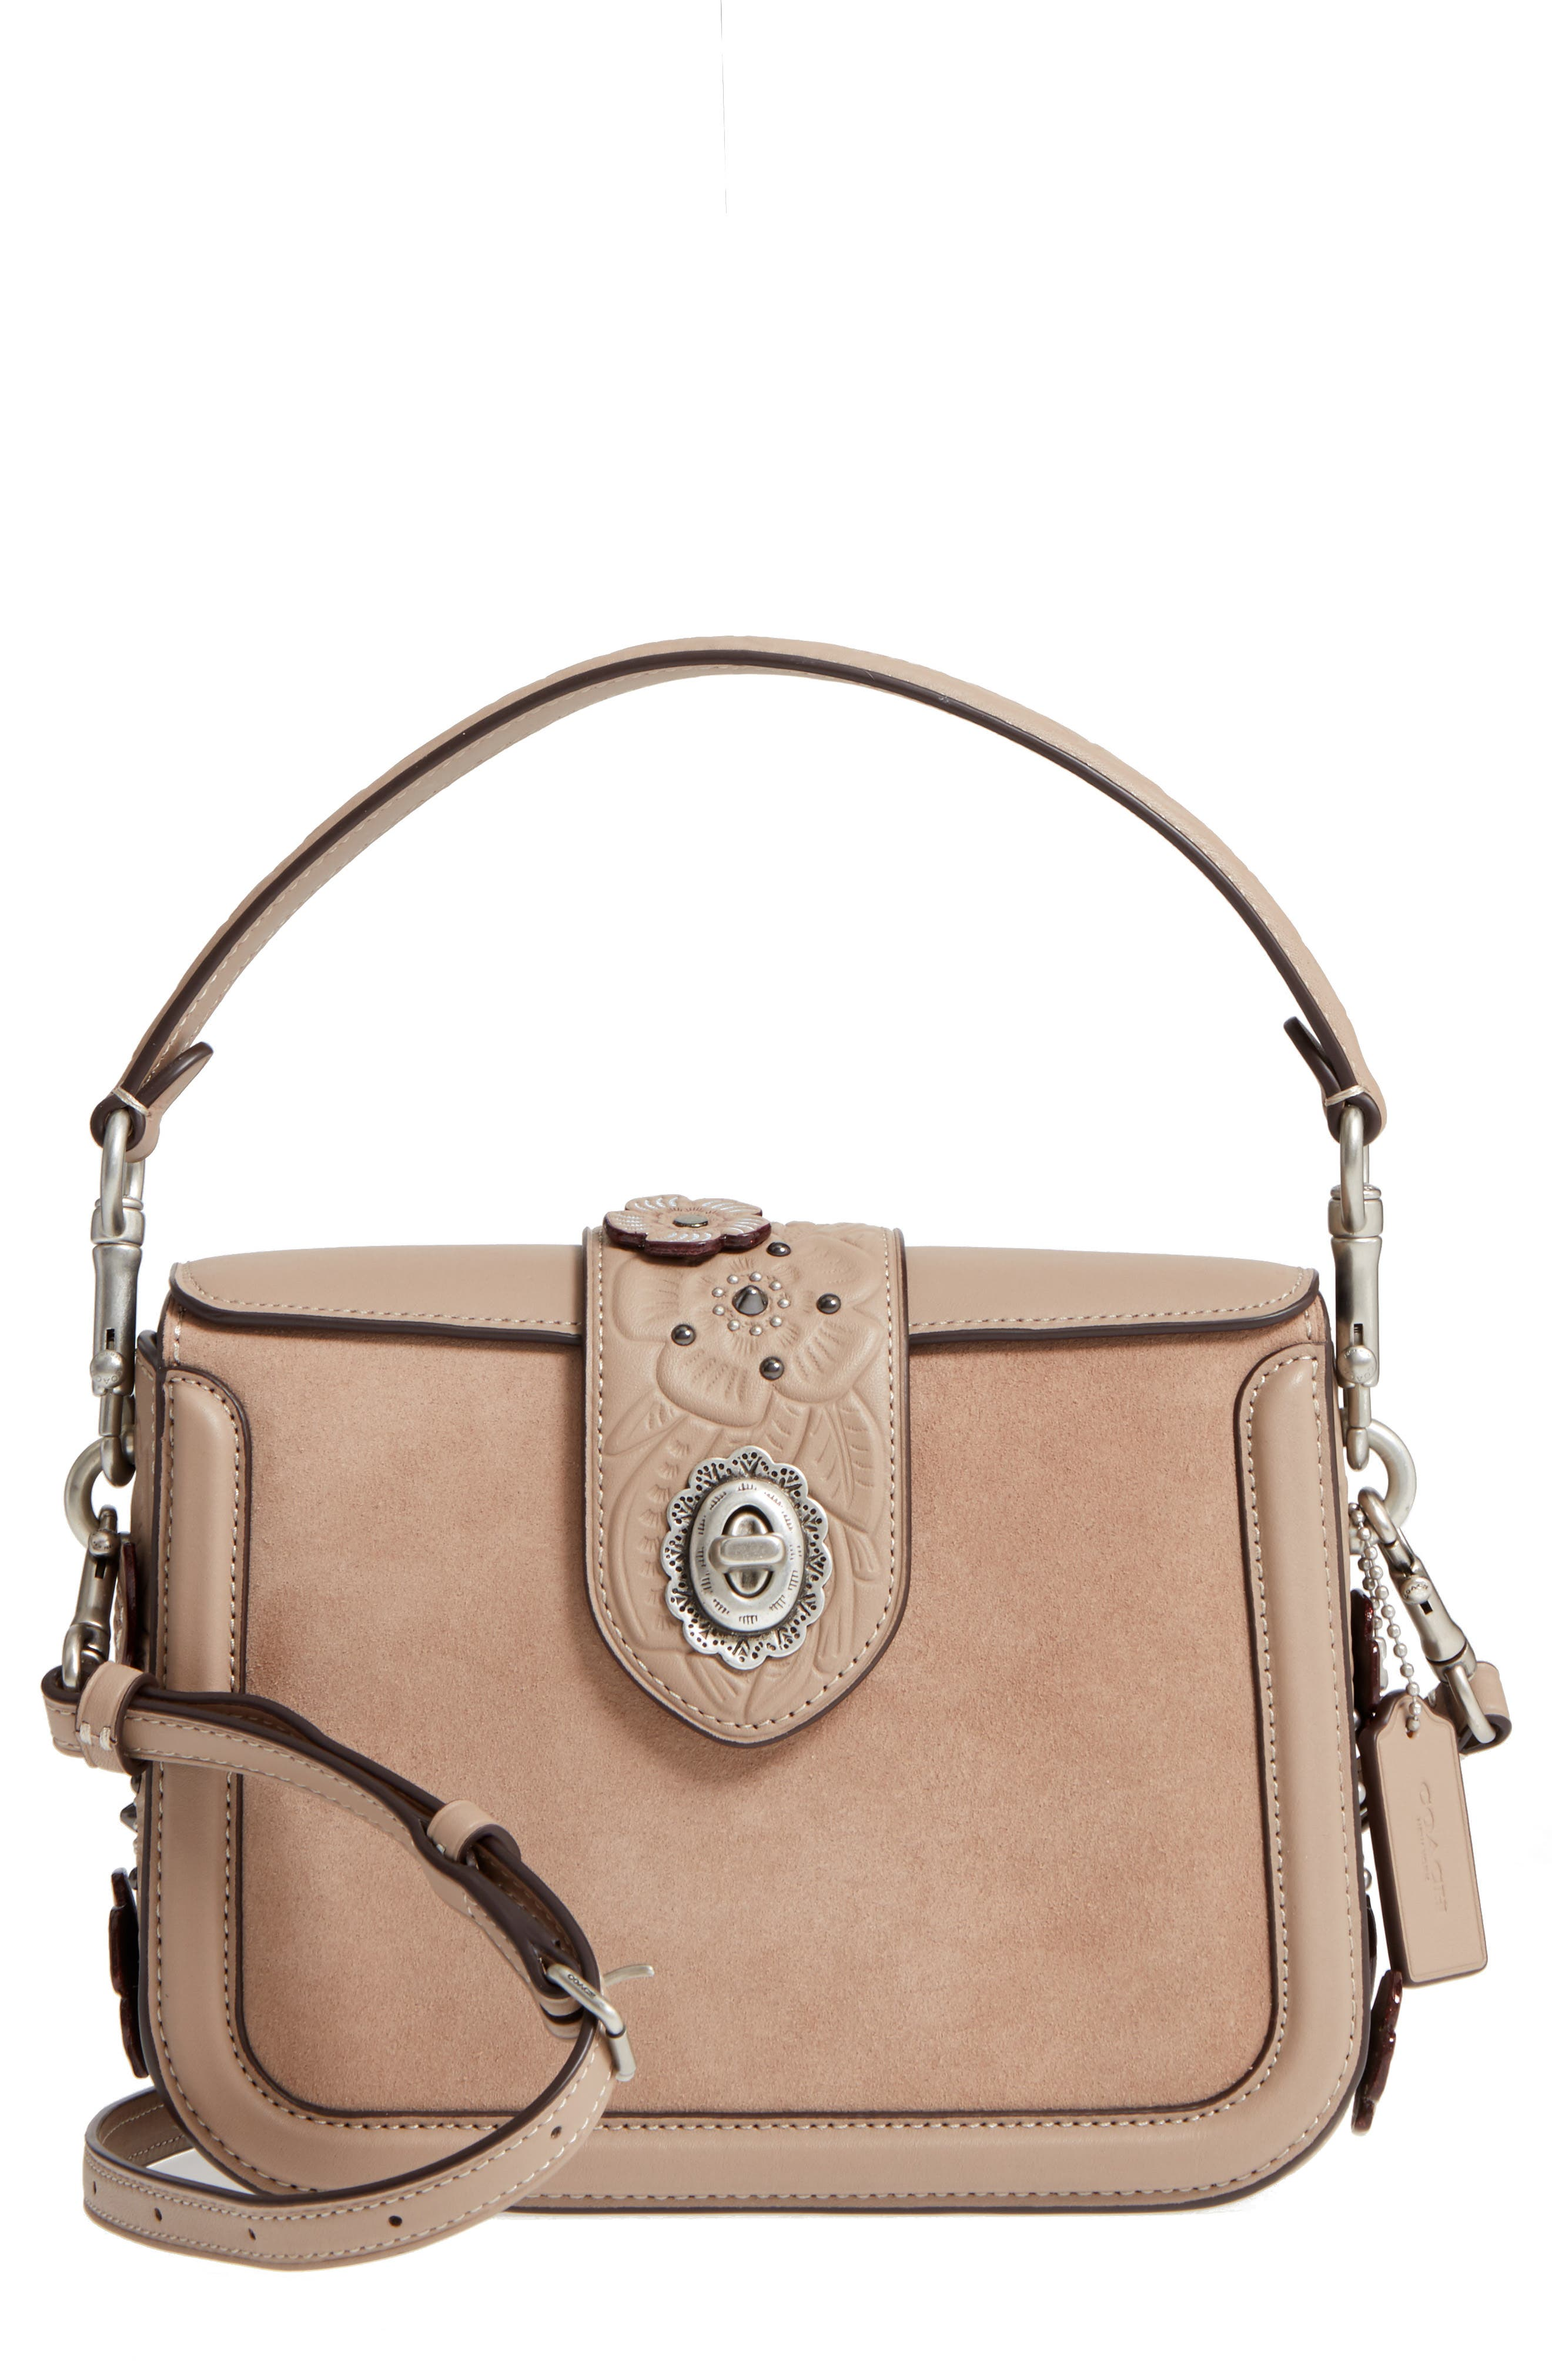 Page Tea Rose Tooled Calfskin Leather Top Handle Satchel,                         Main,                         color, Stone Multi